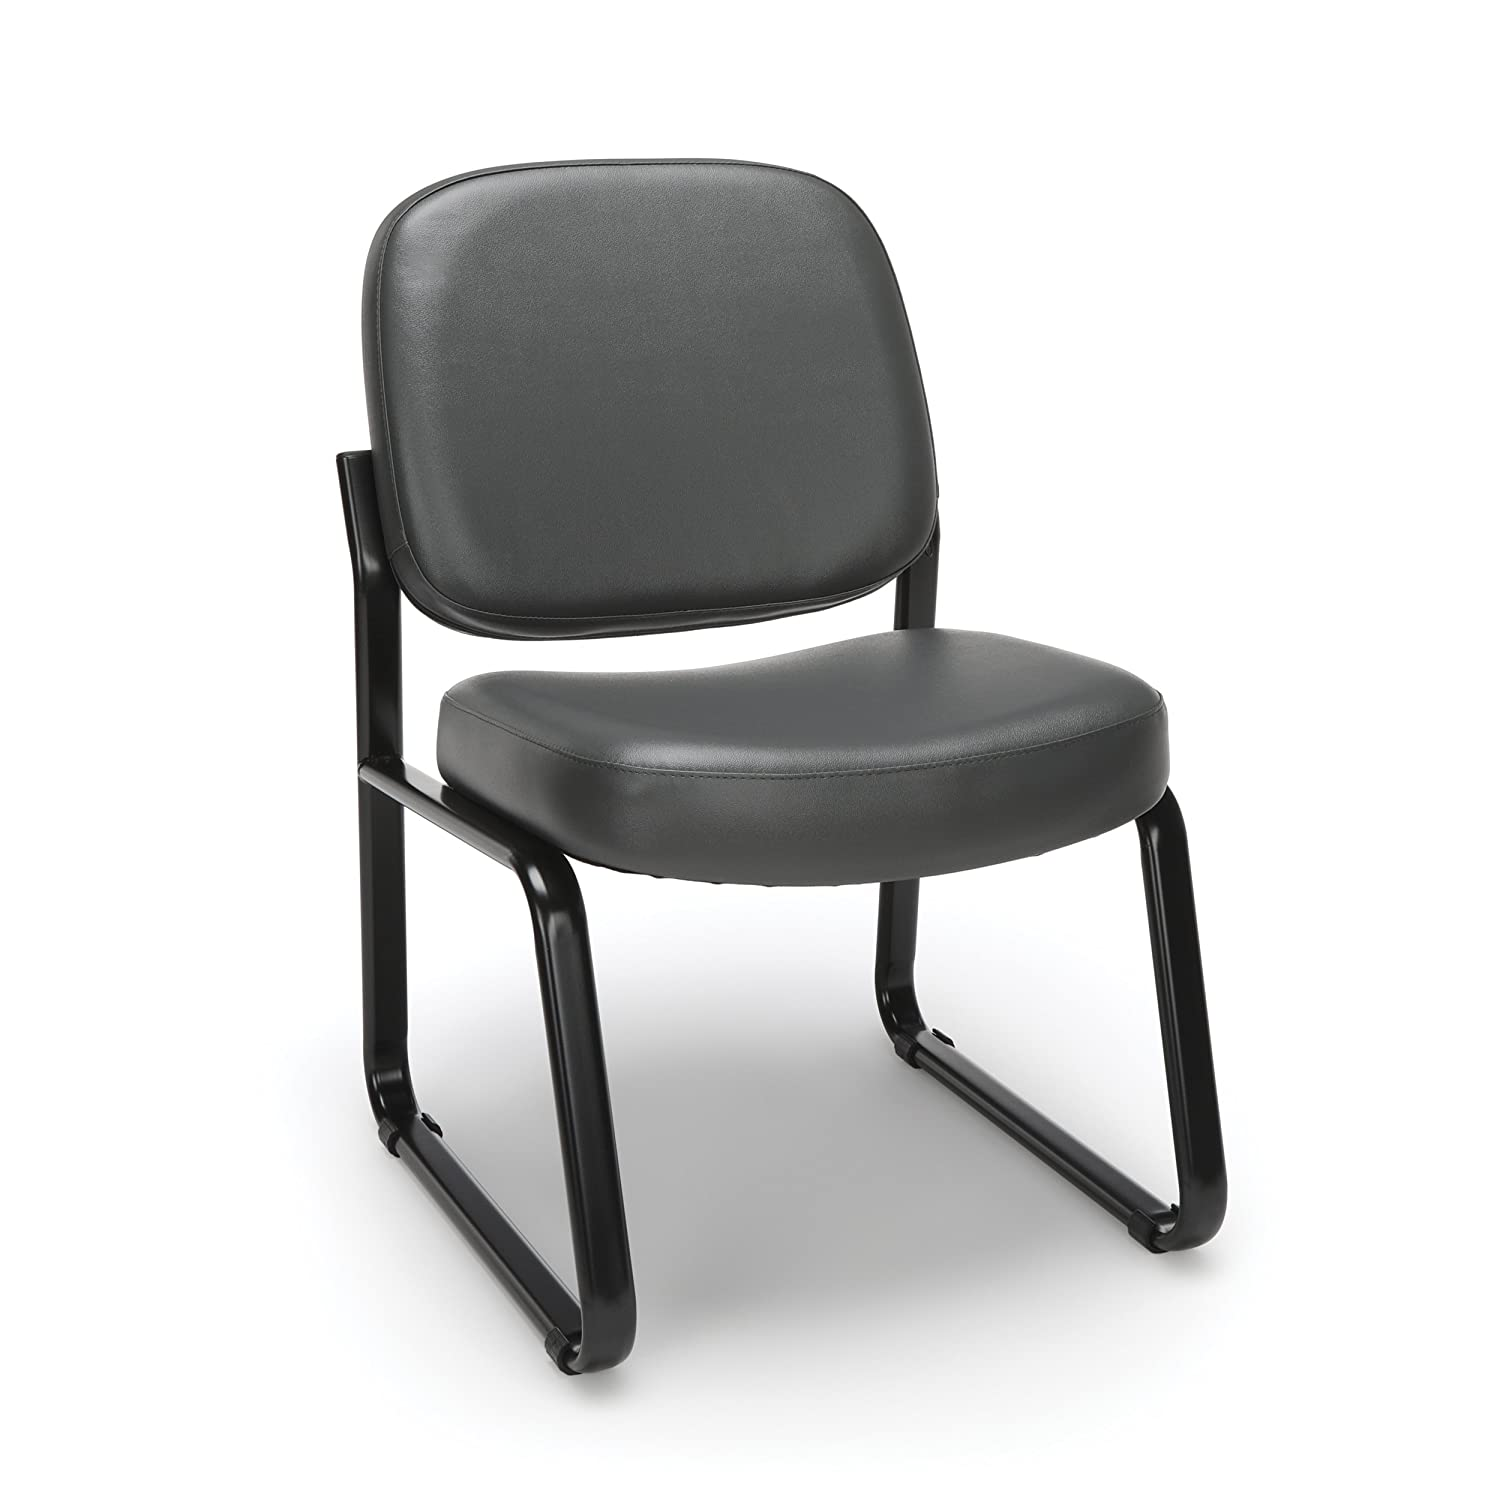 Amazon.com: OFM Armless Reception Chair - Anti-Microbial/Anti ...